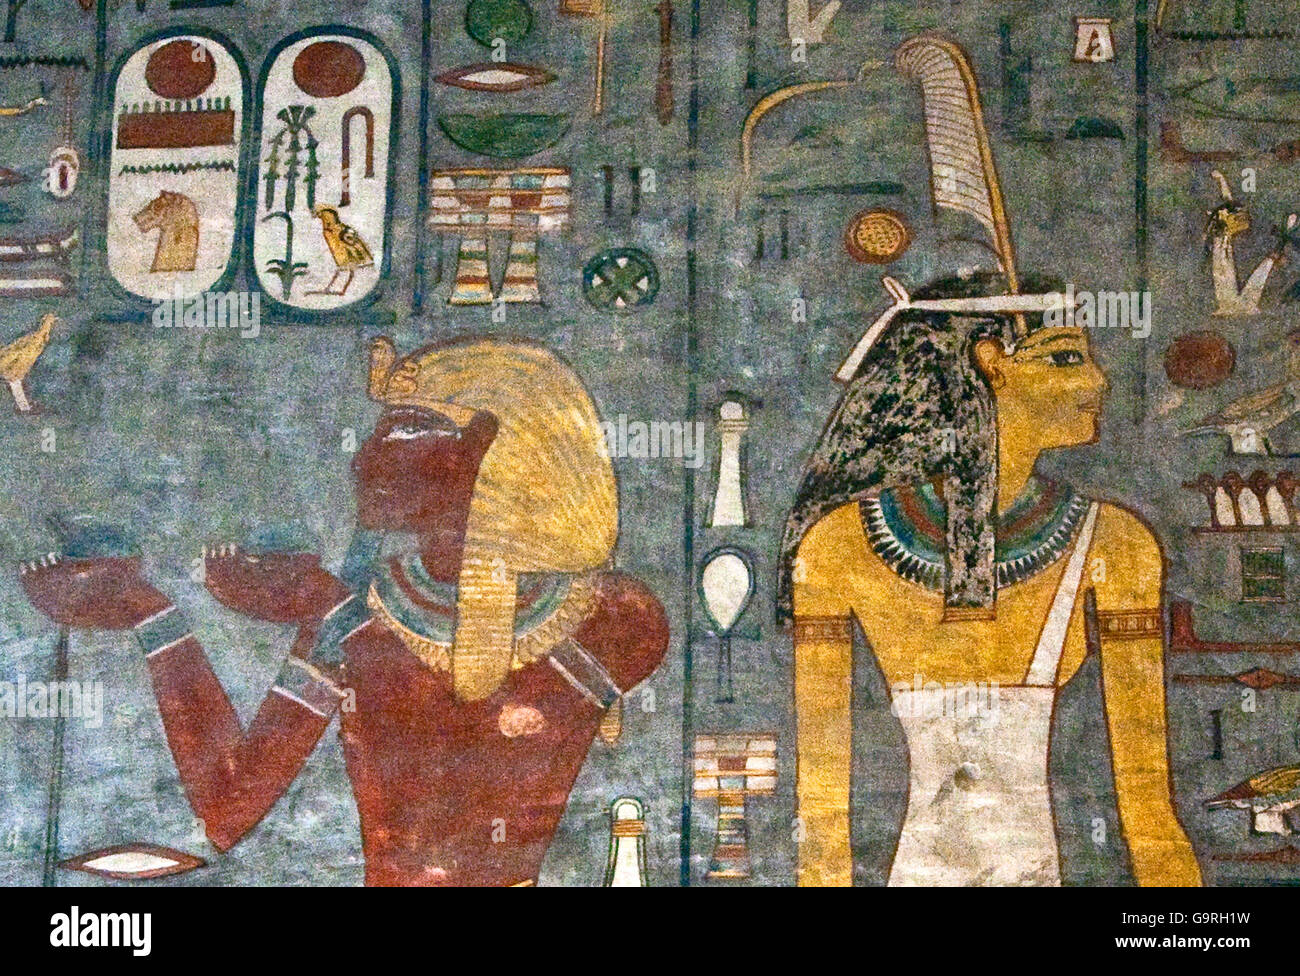 Mural painting pharao pharaohs queen tomb of ramses i for Egyptian mural art